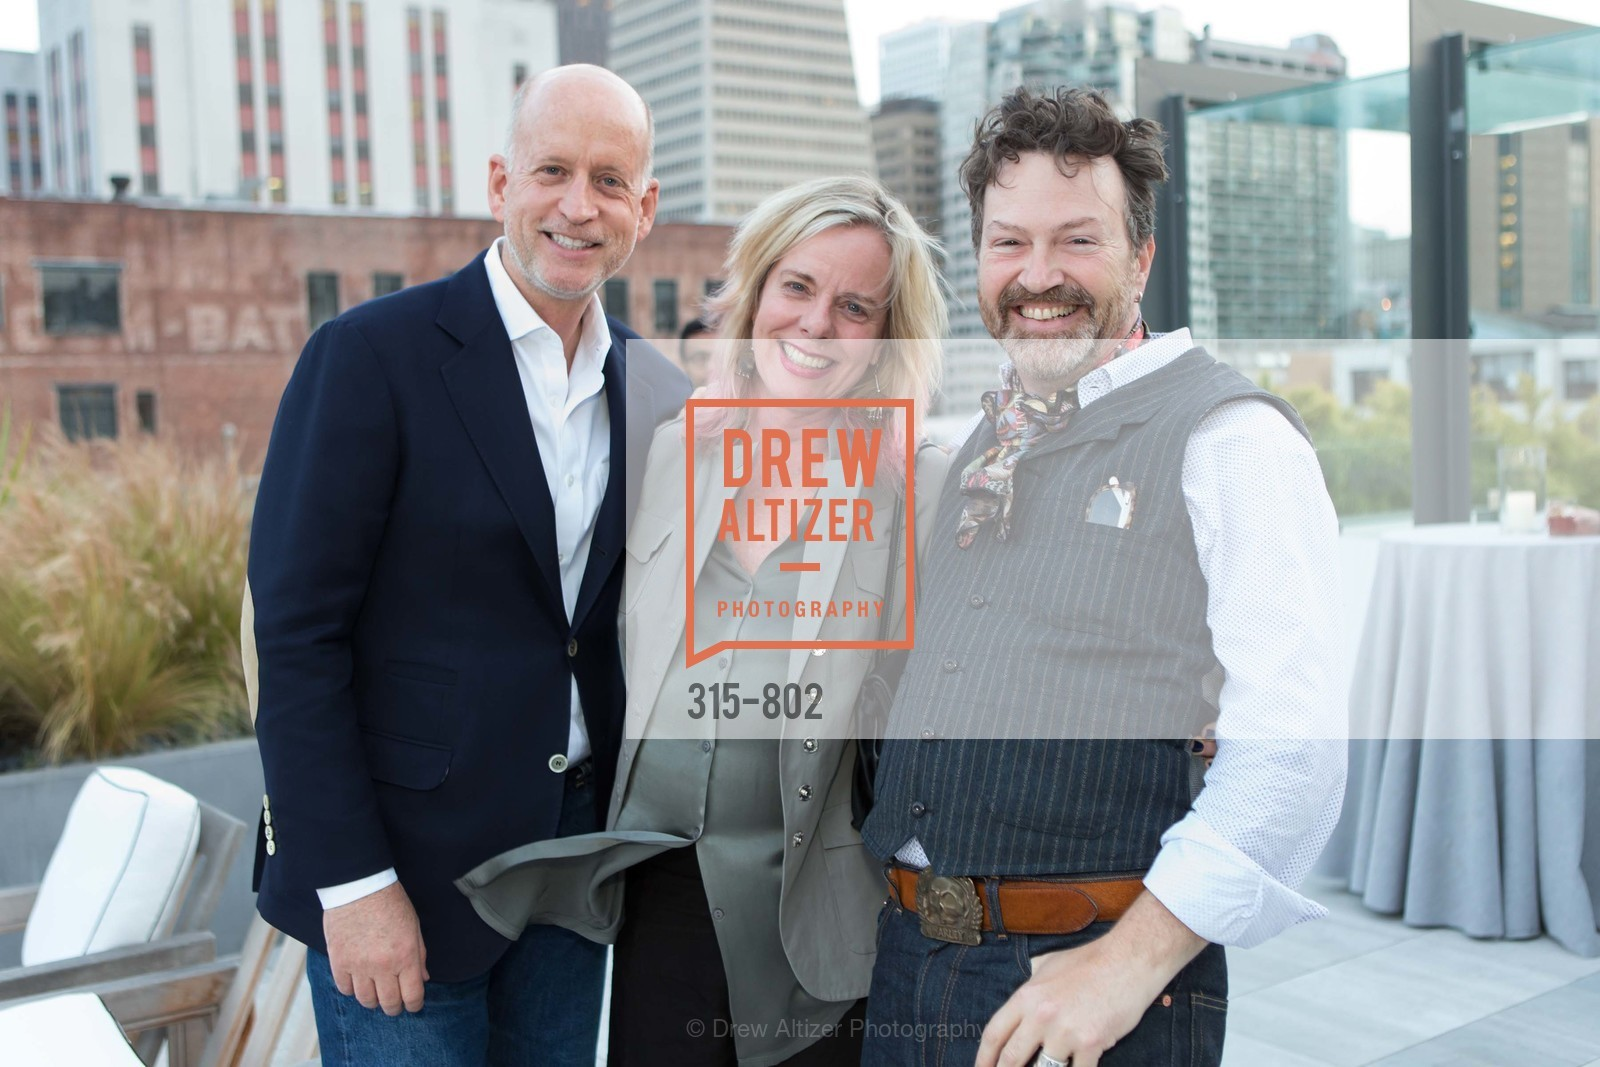 Gus Wallbolt, Susan McLaughlin, Paul D'Orleans, MR PORTER Celebrate The San Francisco Issue of The Journal, US, April 24th, 2015,Drew Altizer, Drew Altizer Photography, full-service event agency, private events, San Francisco photographer, photographer California